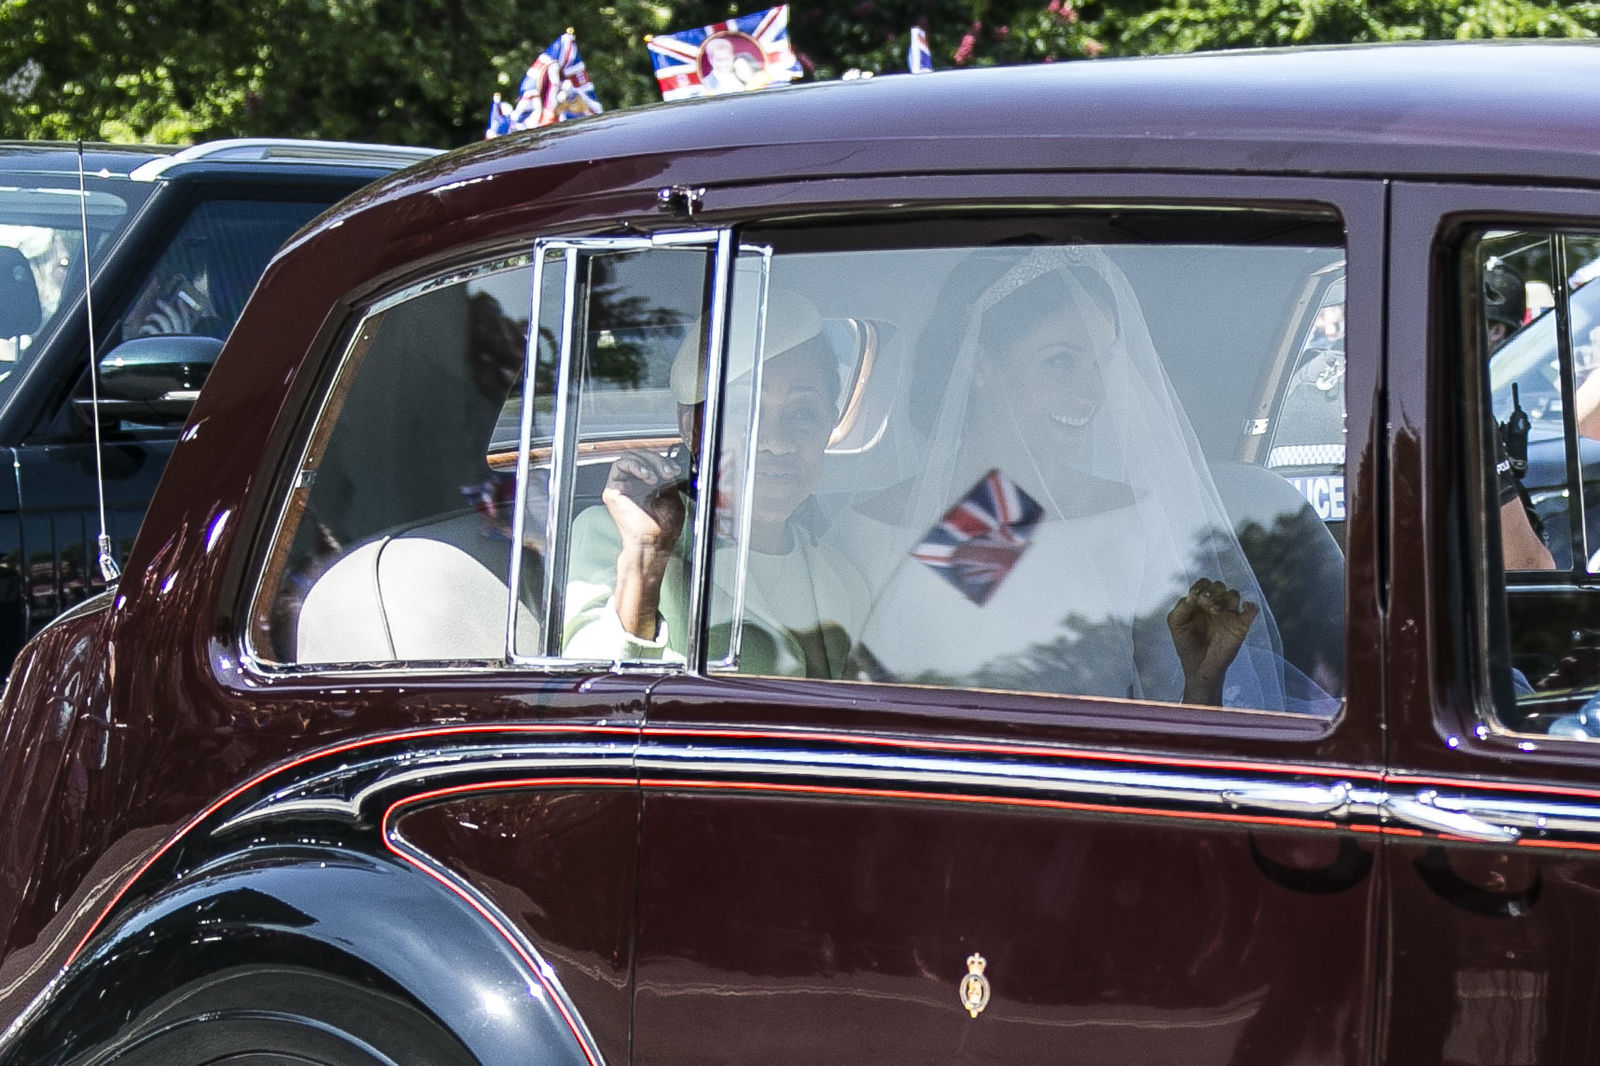 Meghan Markle, center, and her mother Doria Ragland, left, leave Cliveden House Hotel in Taplow, near London, England, Saturday, May 19, 2018 before Markle's wedding ceremony with Prince Harry at St. George's Chapel in Windsor Castle. (Photo by Joel C Ryan/Invision/AP)